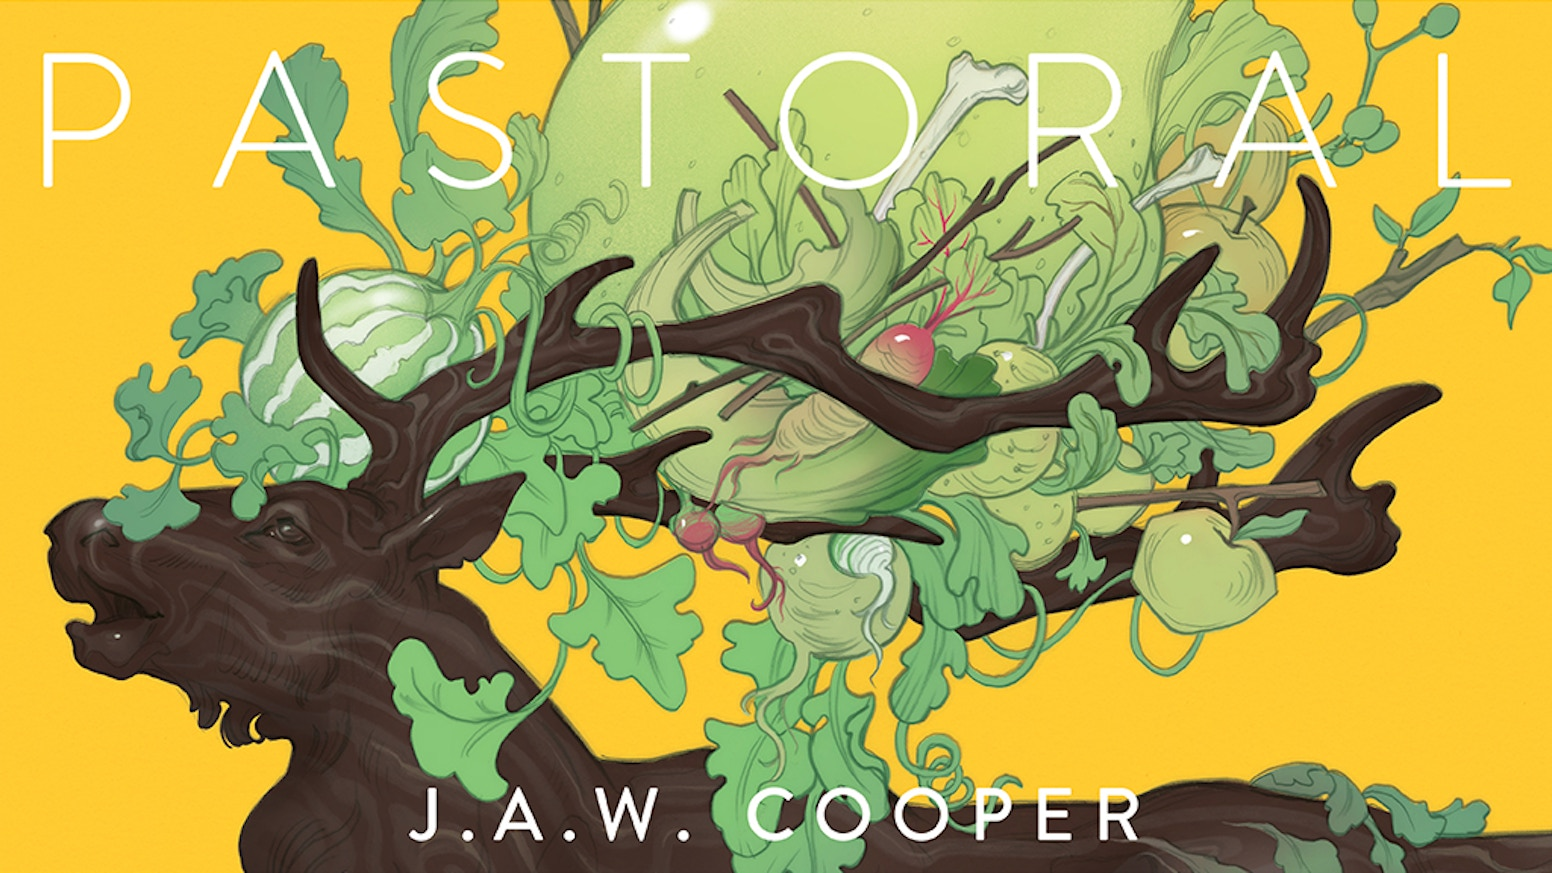 Collecting over 170 of J.A.W. Cooper's personal works.